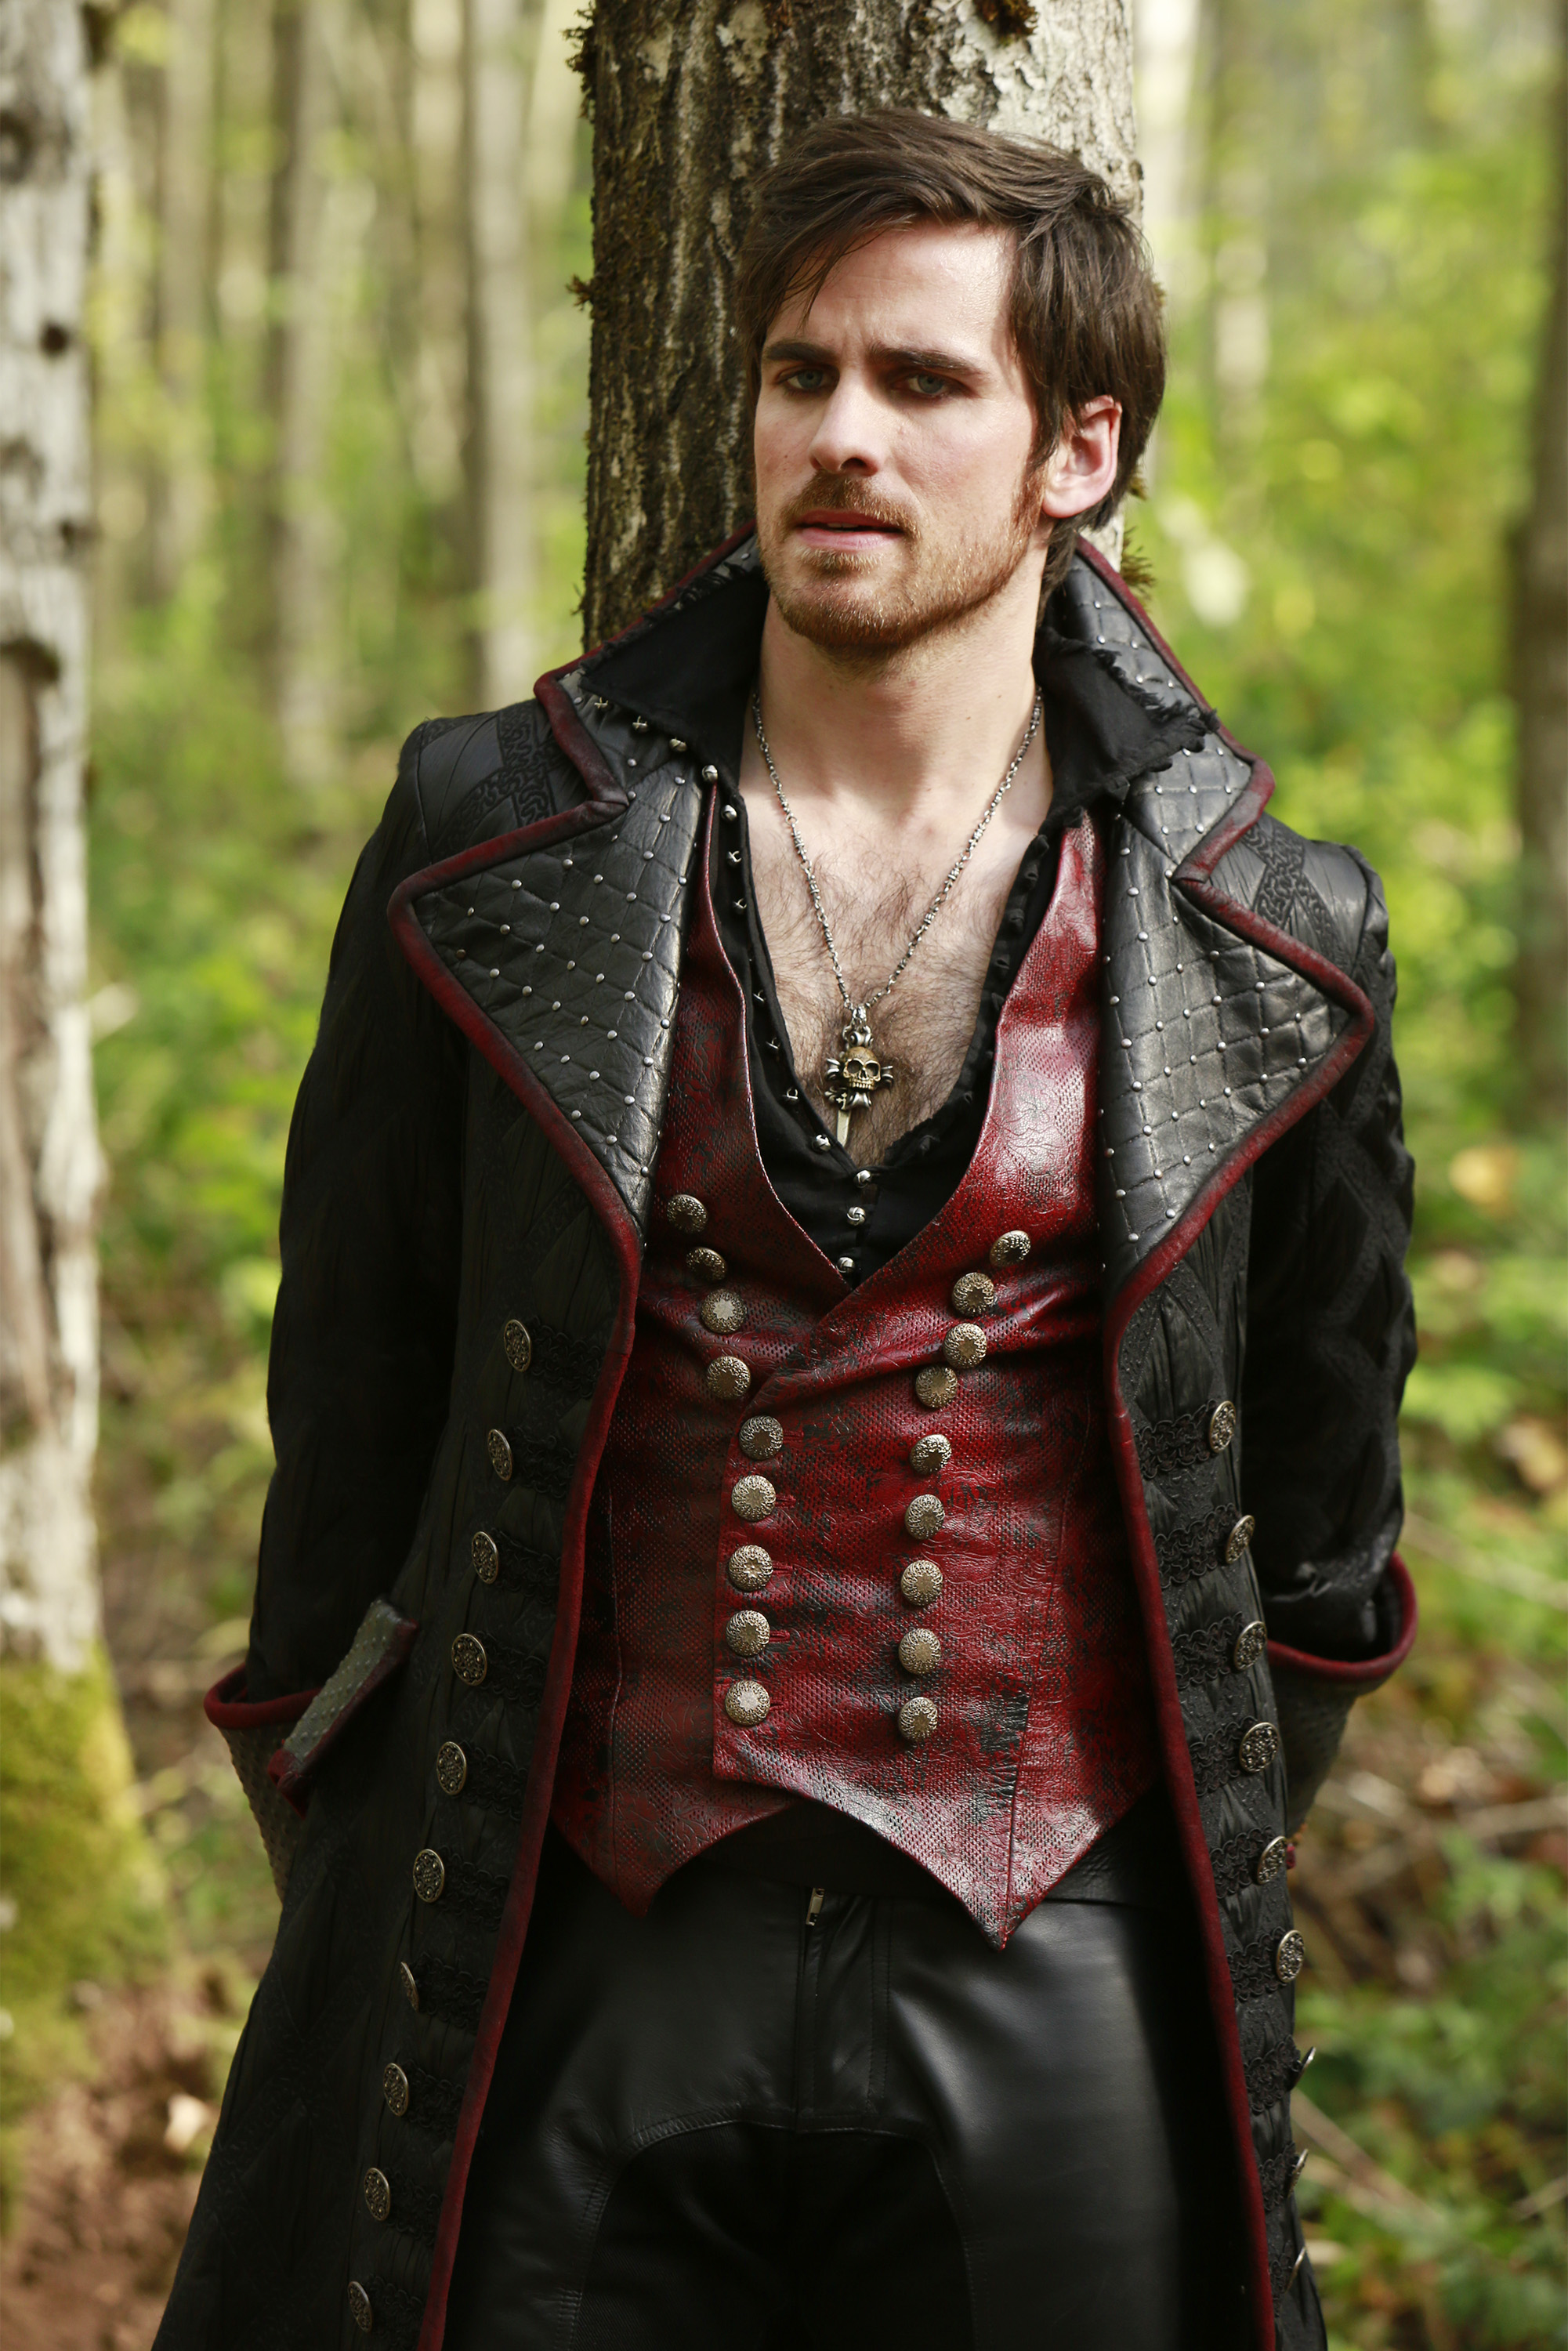 hot hook once upon a time Once upon a time season 6 set pictures shows emma, hook and henry on a mission together once upon a time season 6 returns on 25 september.